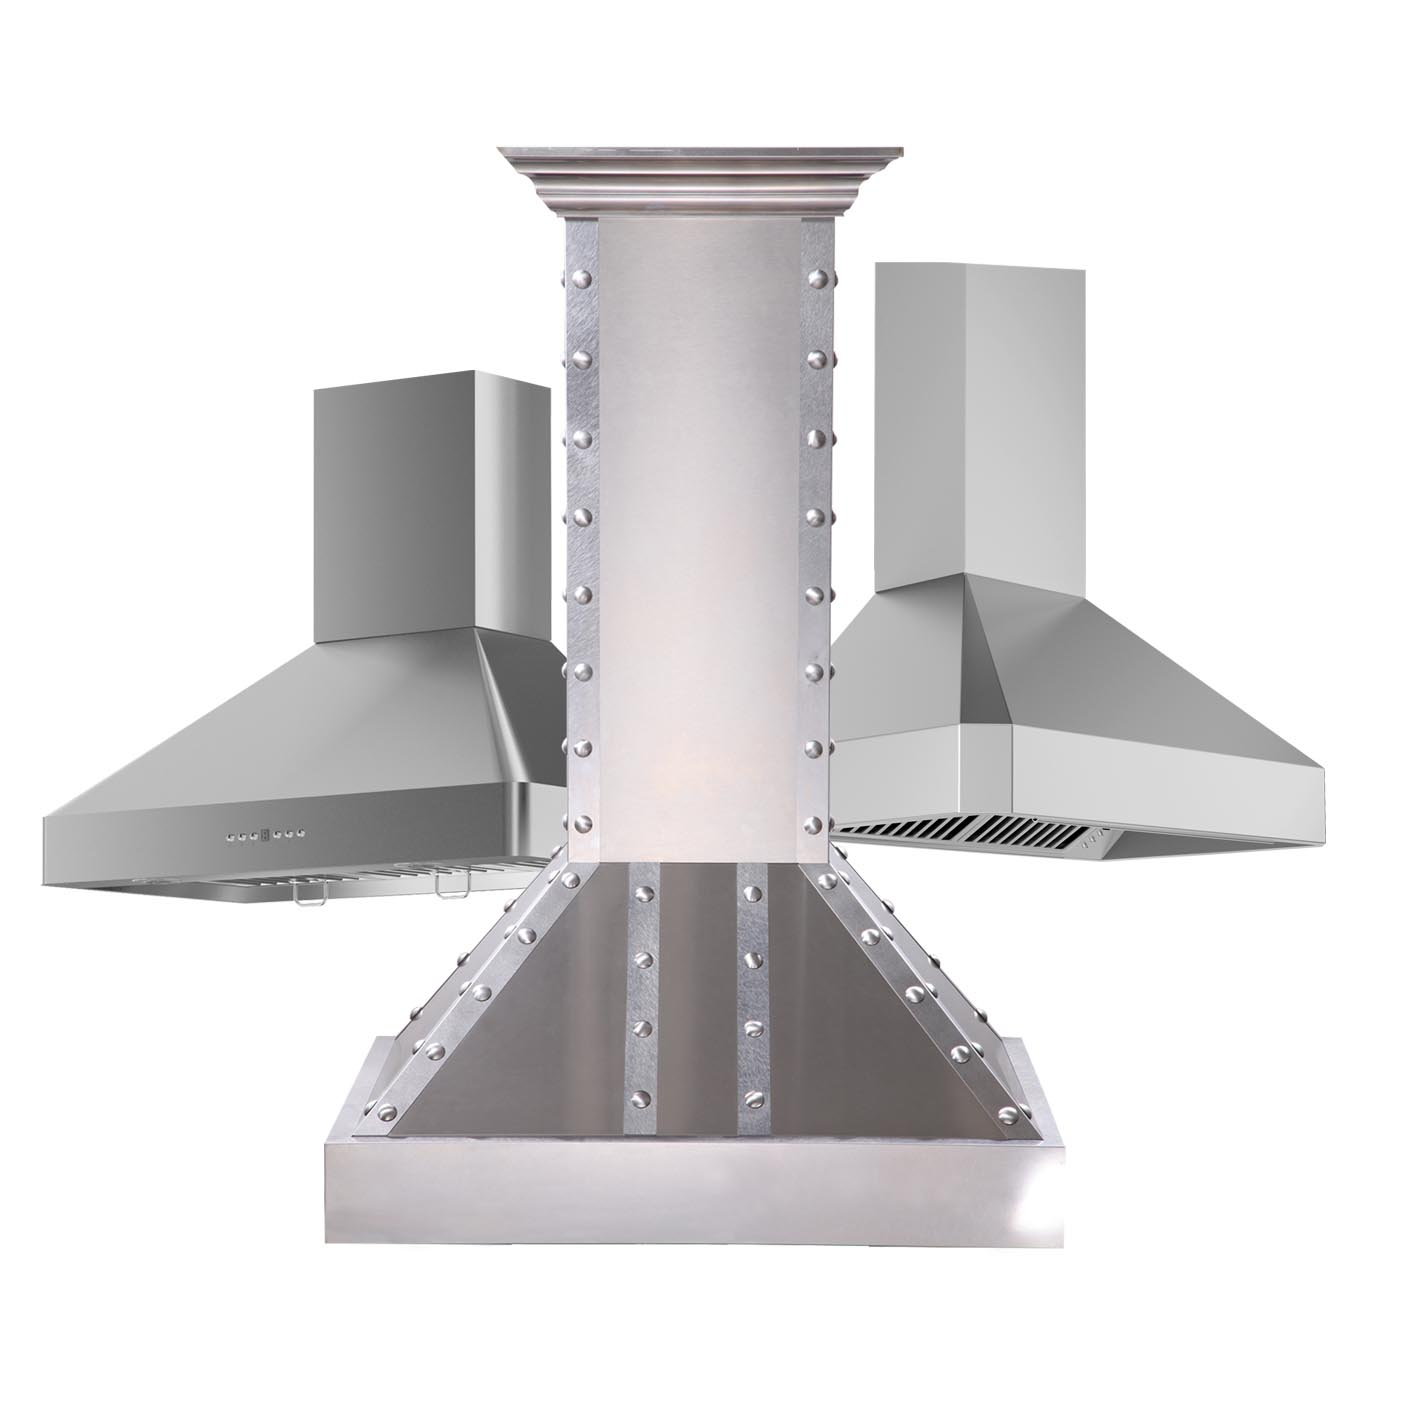 Designer Series Stainless Steel Hoods